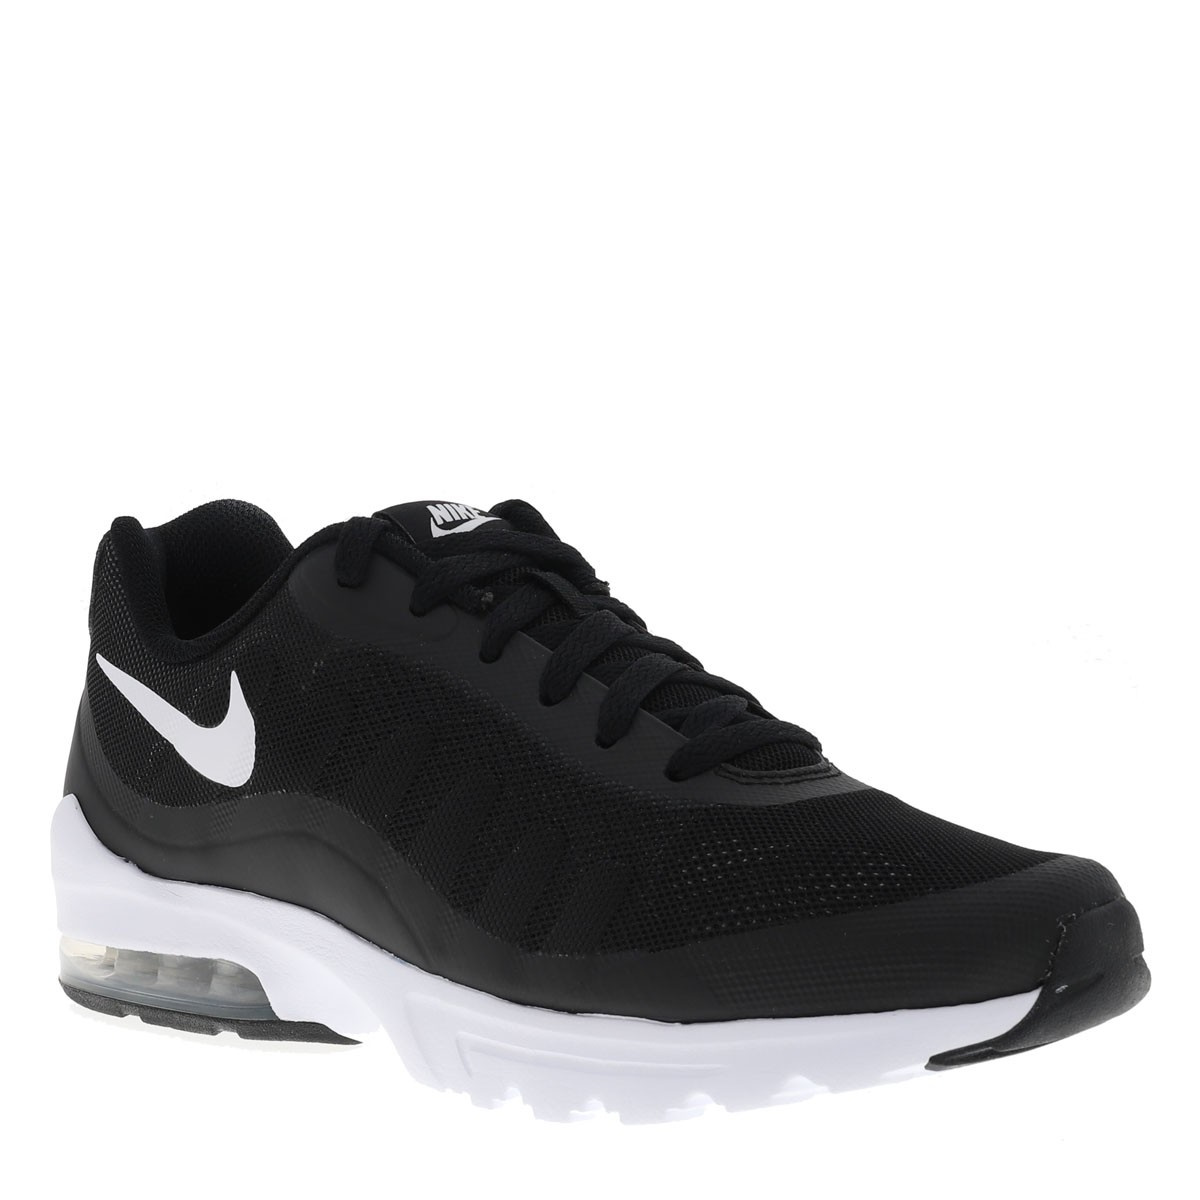 NIKE Baskets Air Max Invigor homme noir